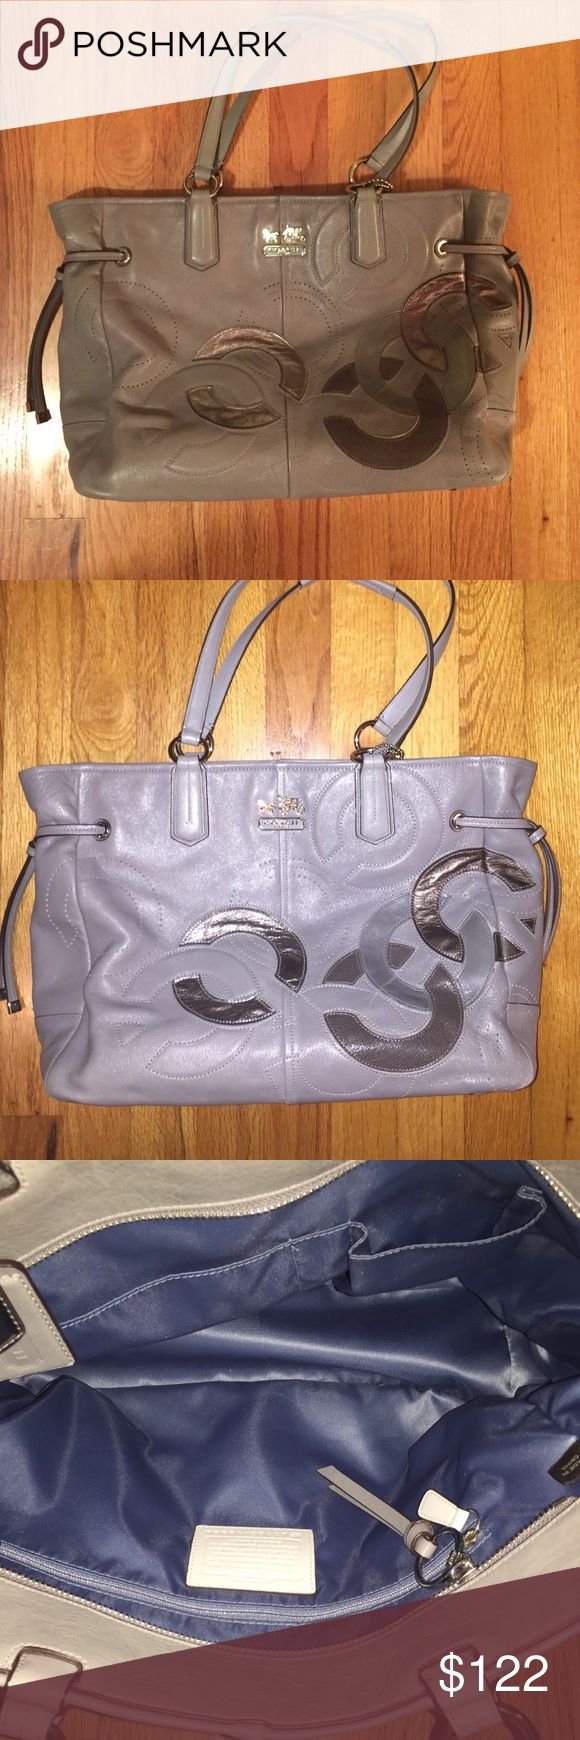 Authentic Coach Silver Tote Bag Authentic Coach Tote! Silver & gray, great condition! Only used very few times. Inside of purse is flawless. Coach Bags Totes